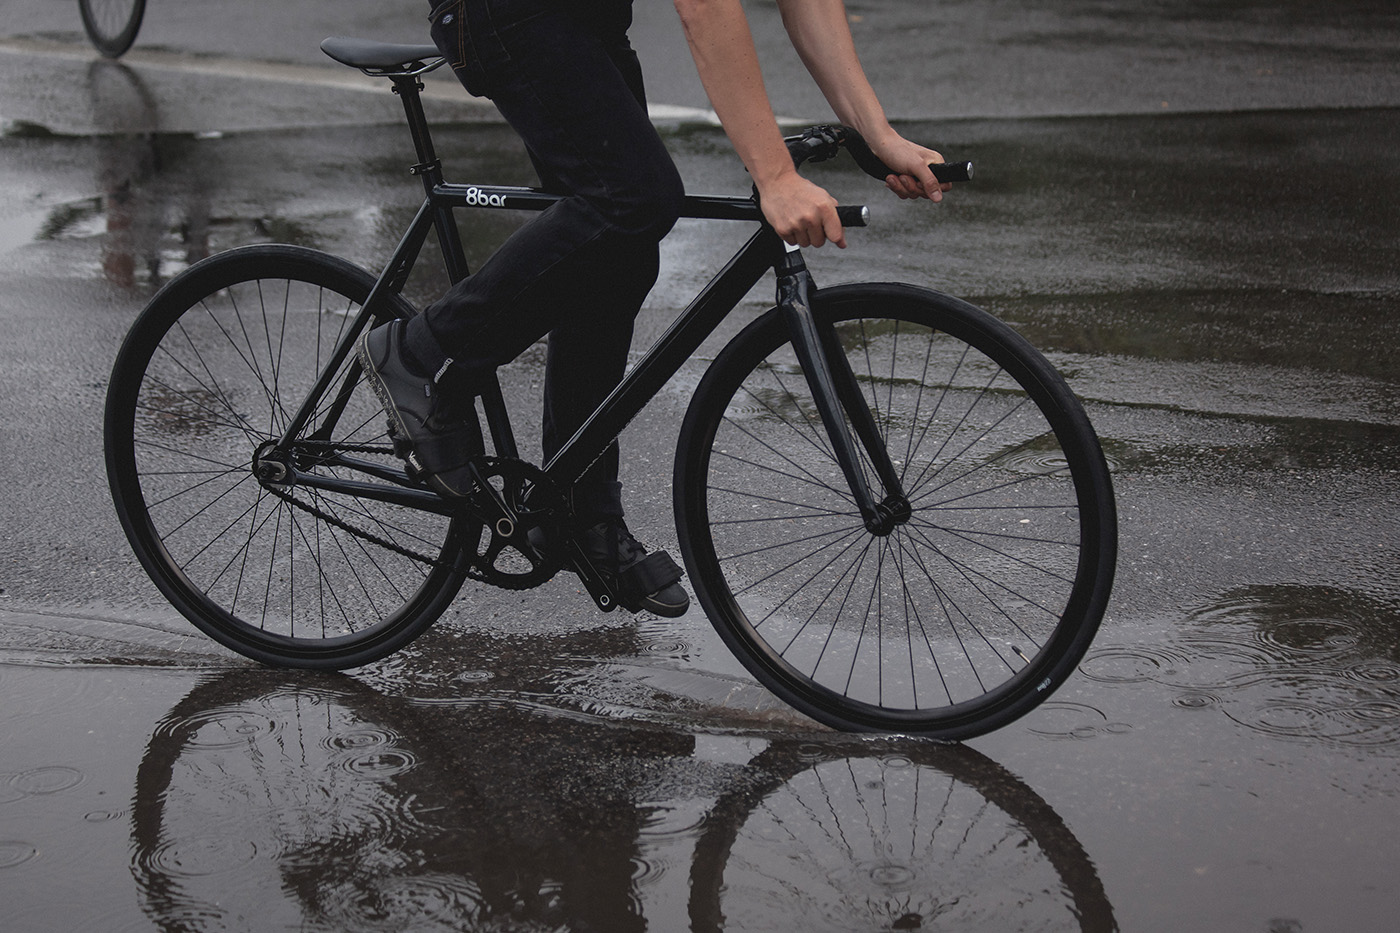 8bar fhain lookbook fixie fixed gear 035